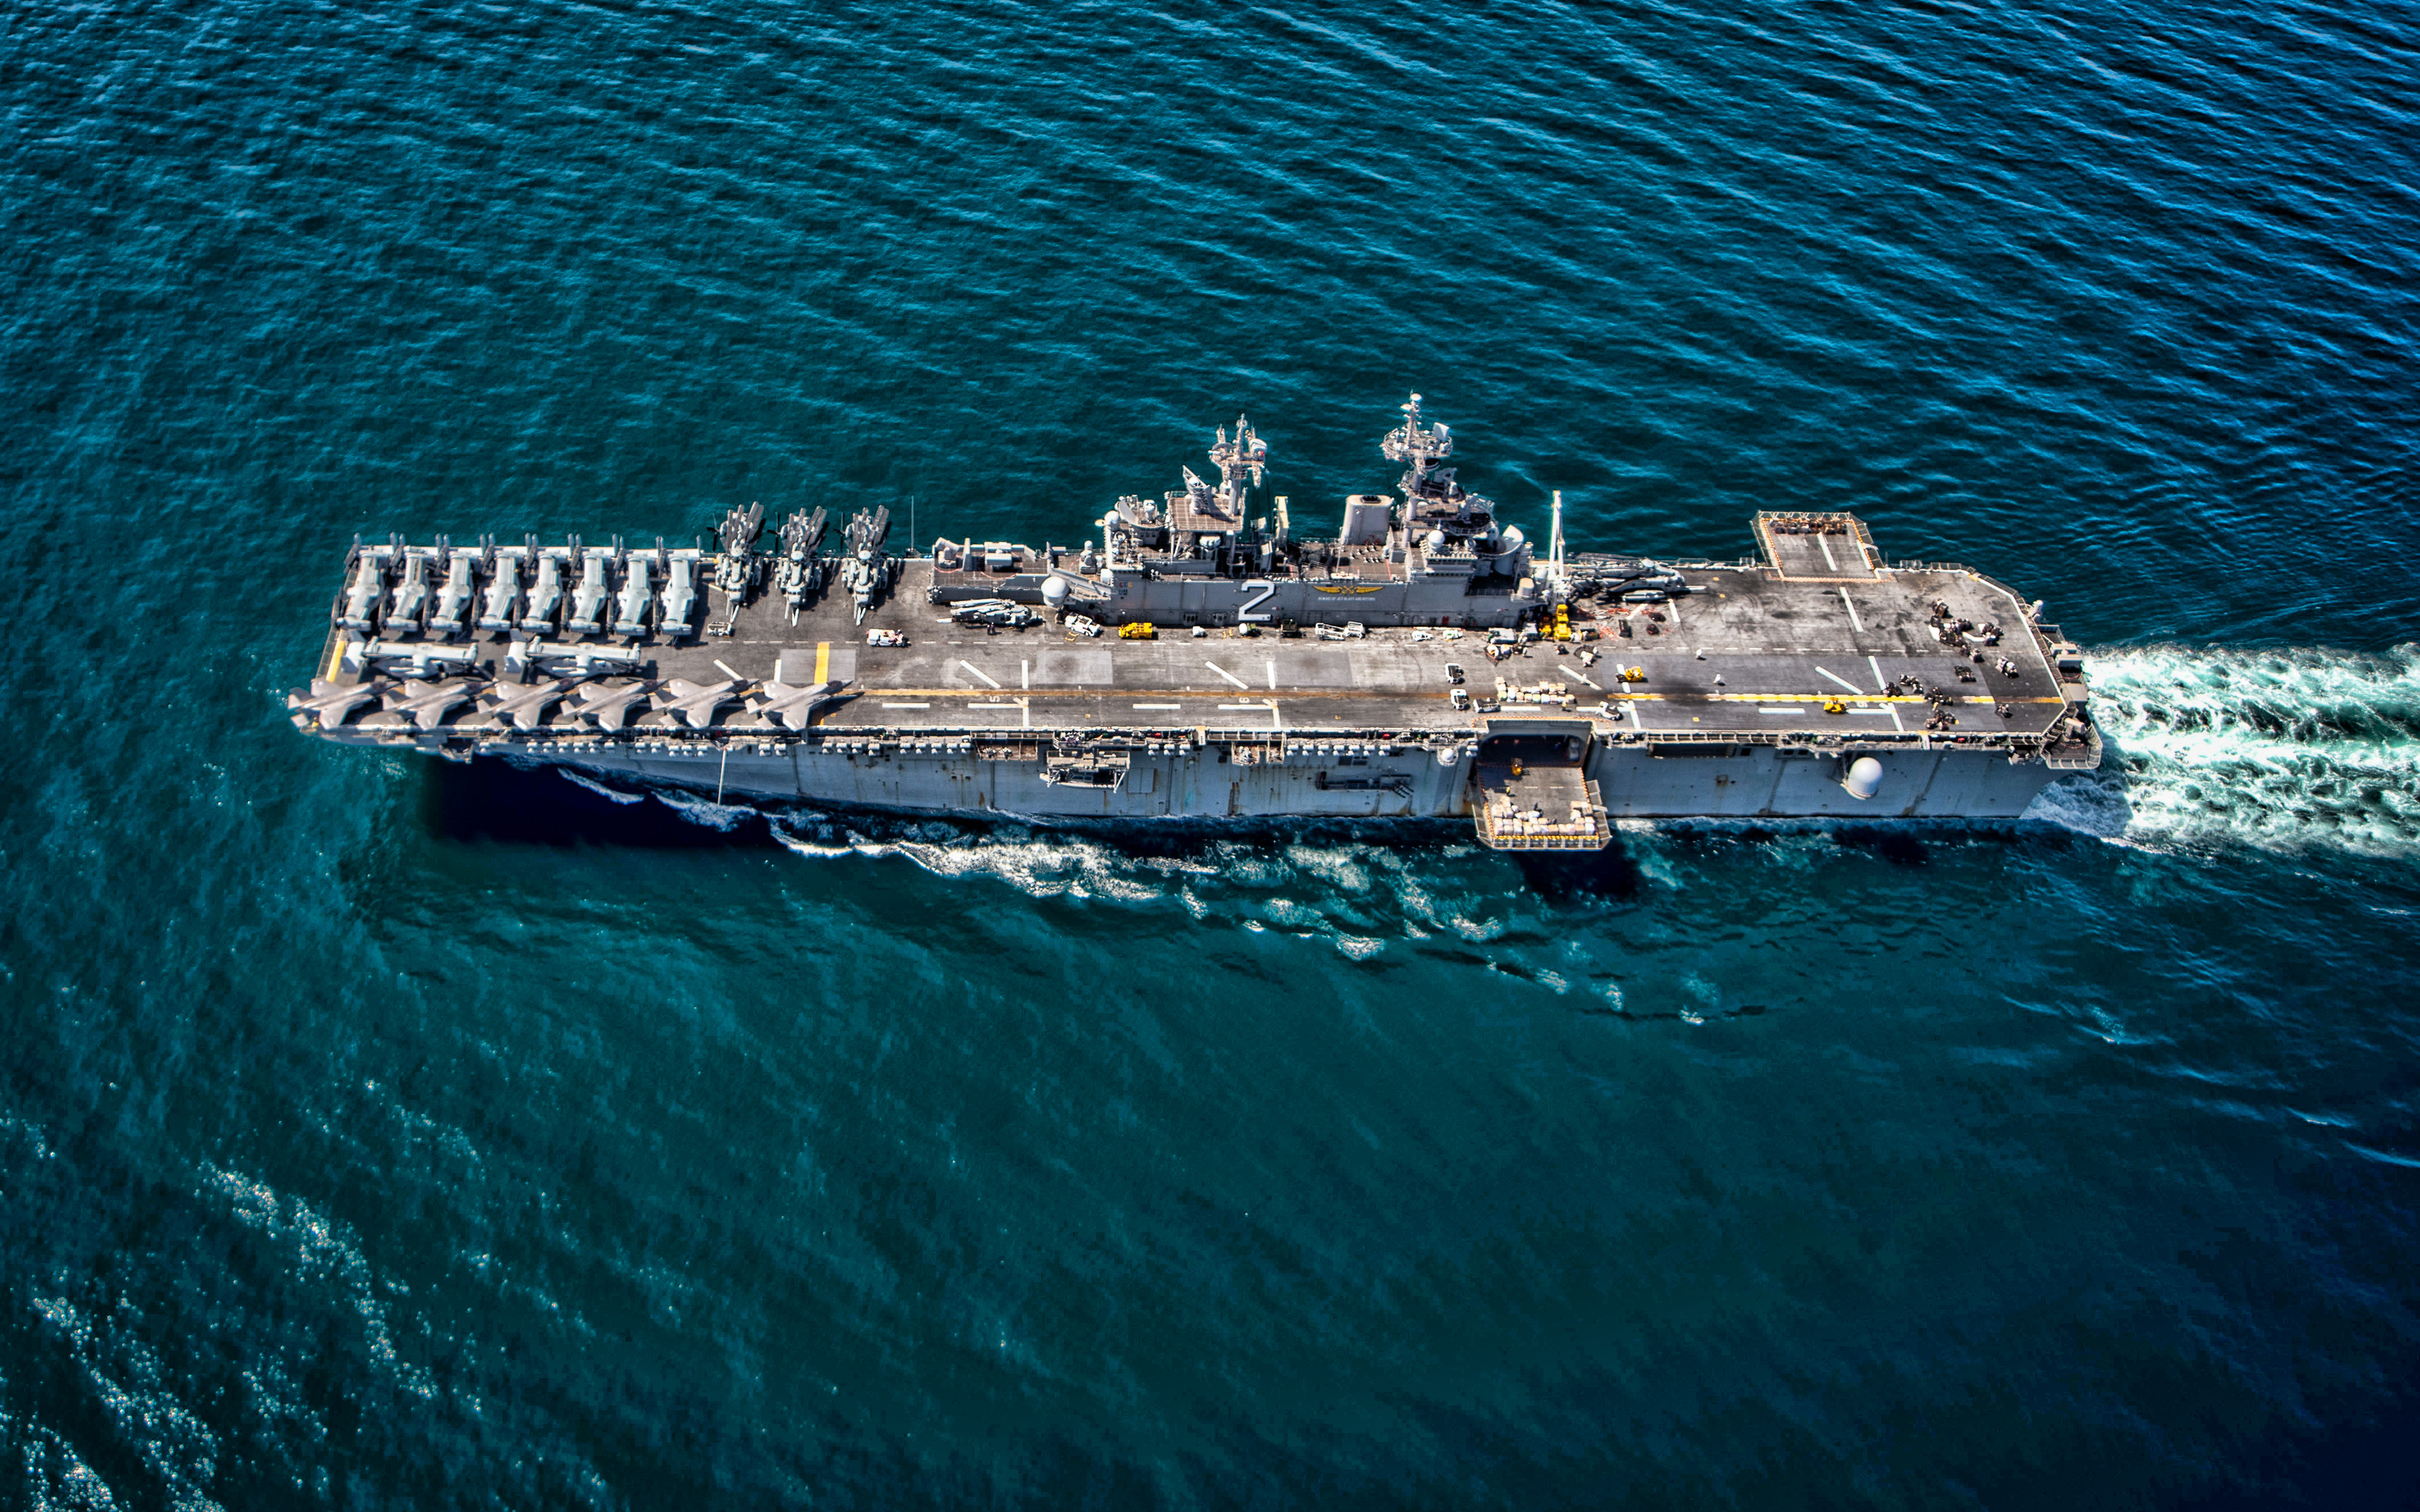 USS Essex, LHD-2, 4k, assault ships, United States Navy, US army, battleship, US Navy, Wasp-class, USS Essex LHD-2